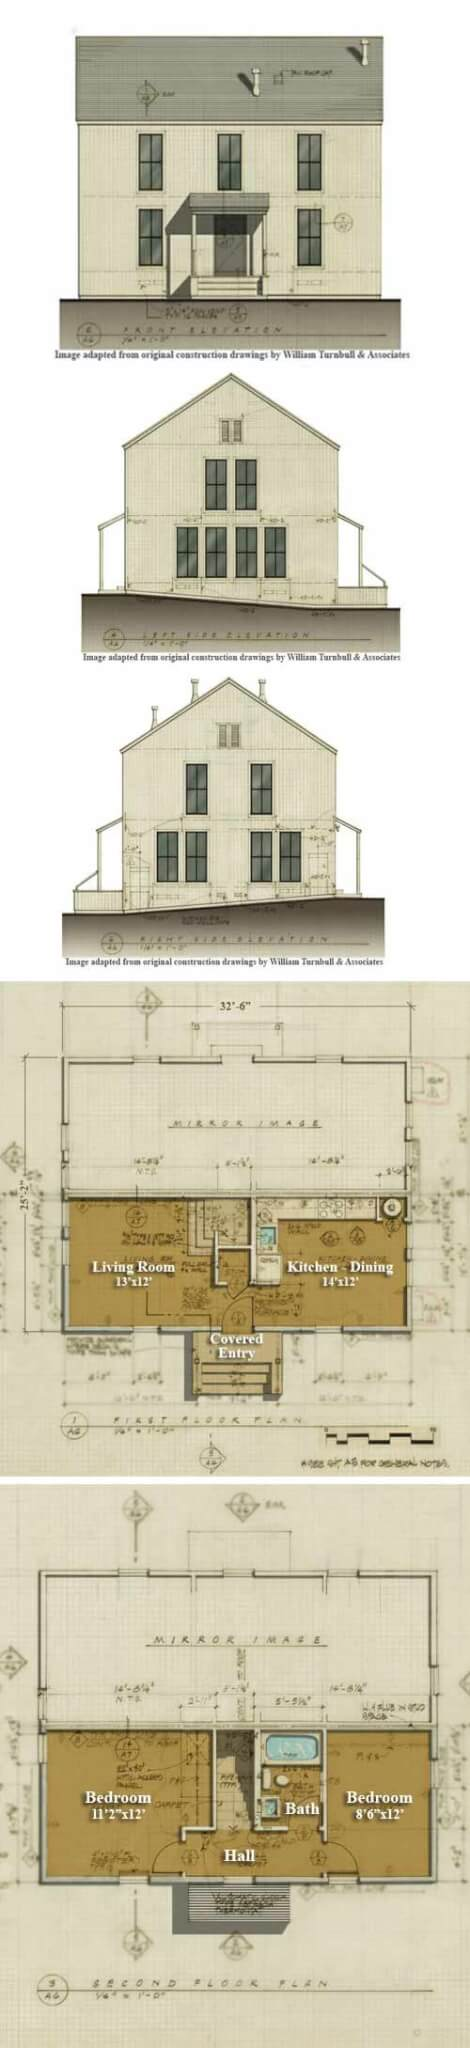 william turnbull duplex historic beach cottage plan - The Redwood House Plans 1960s